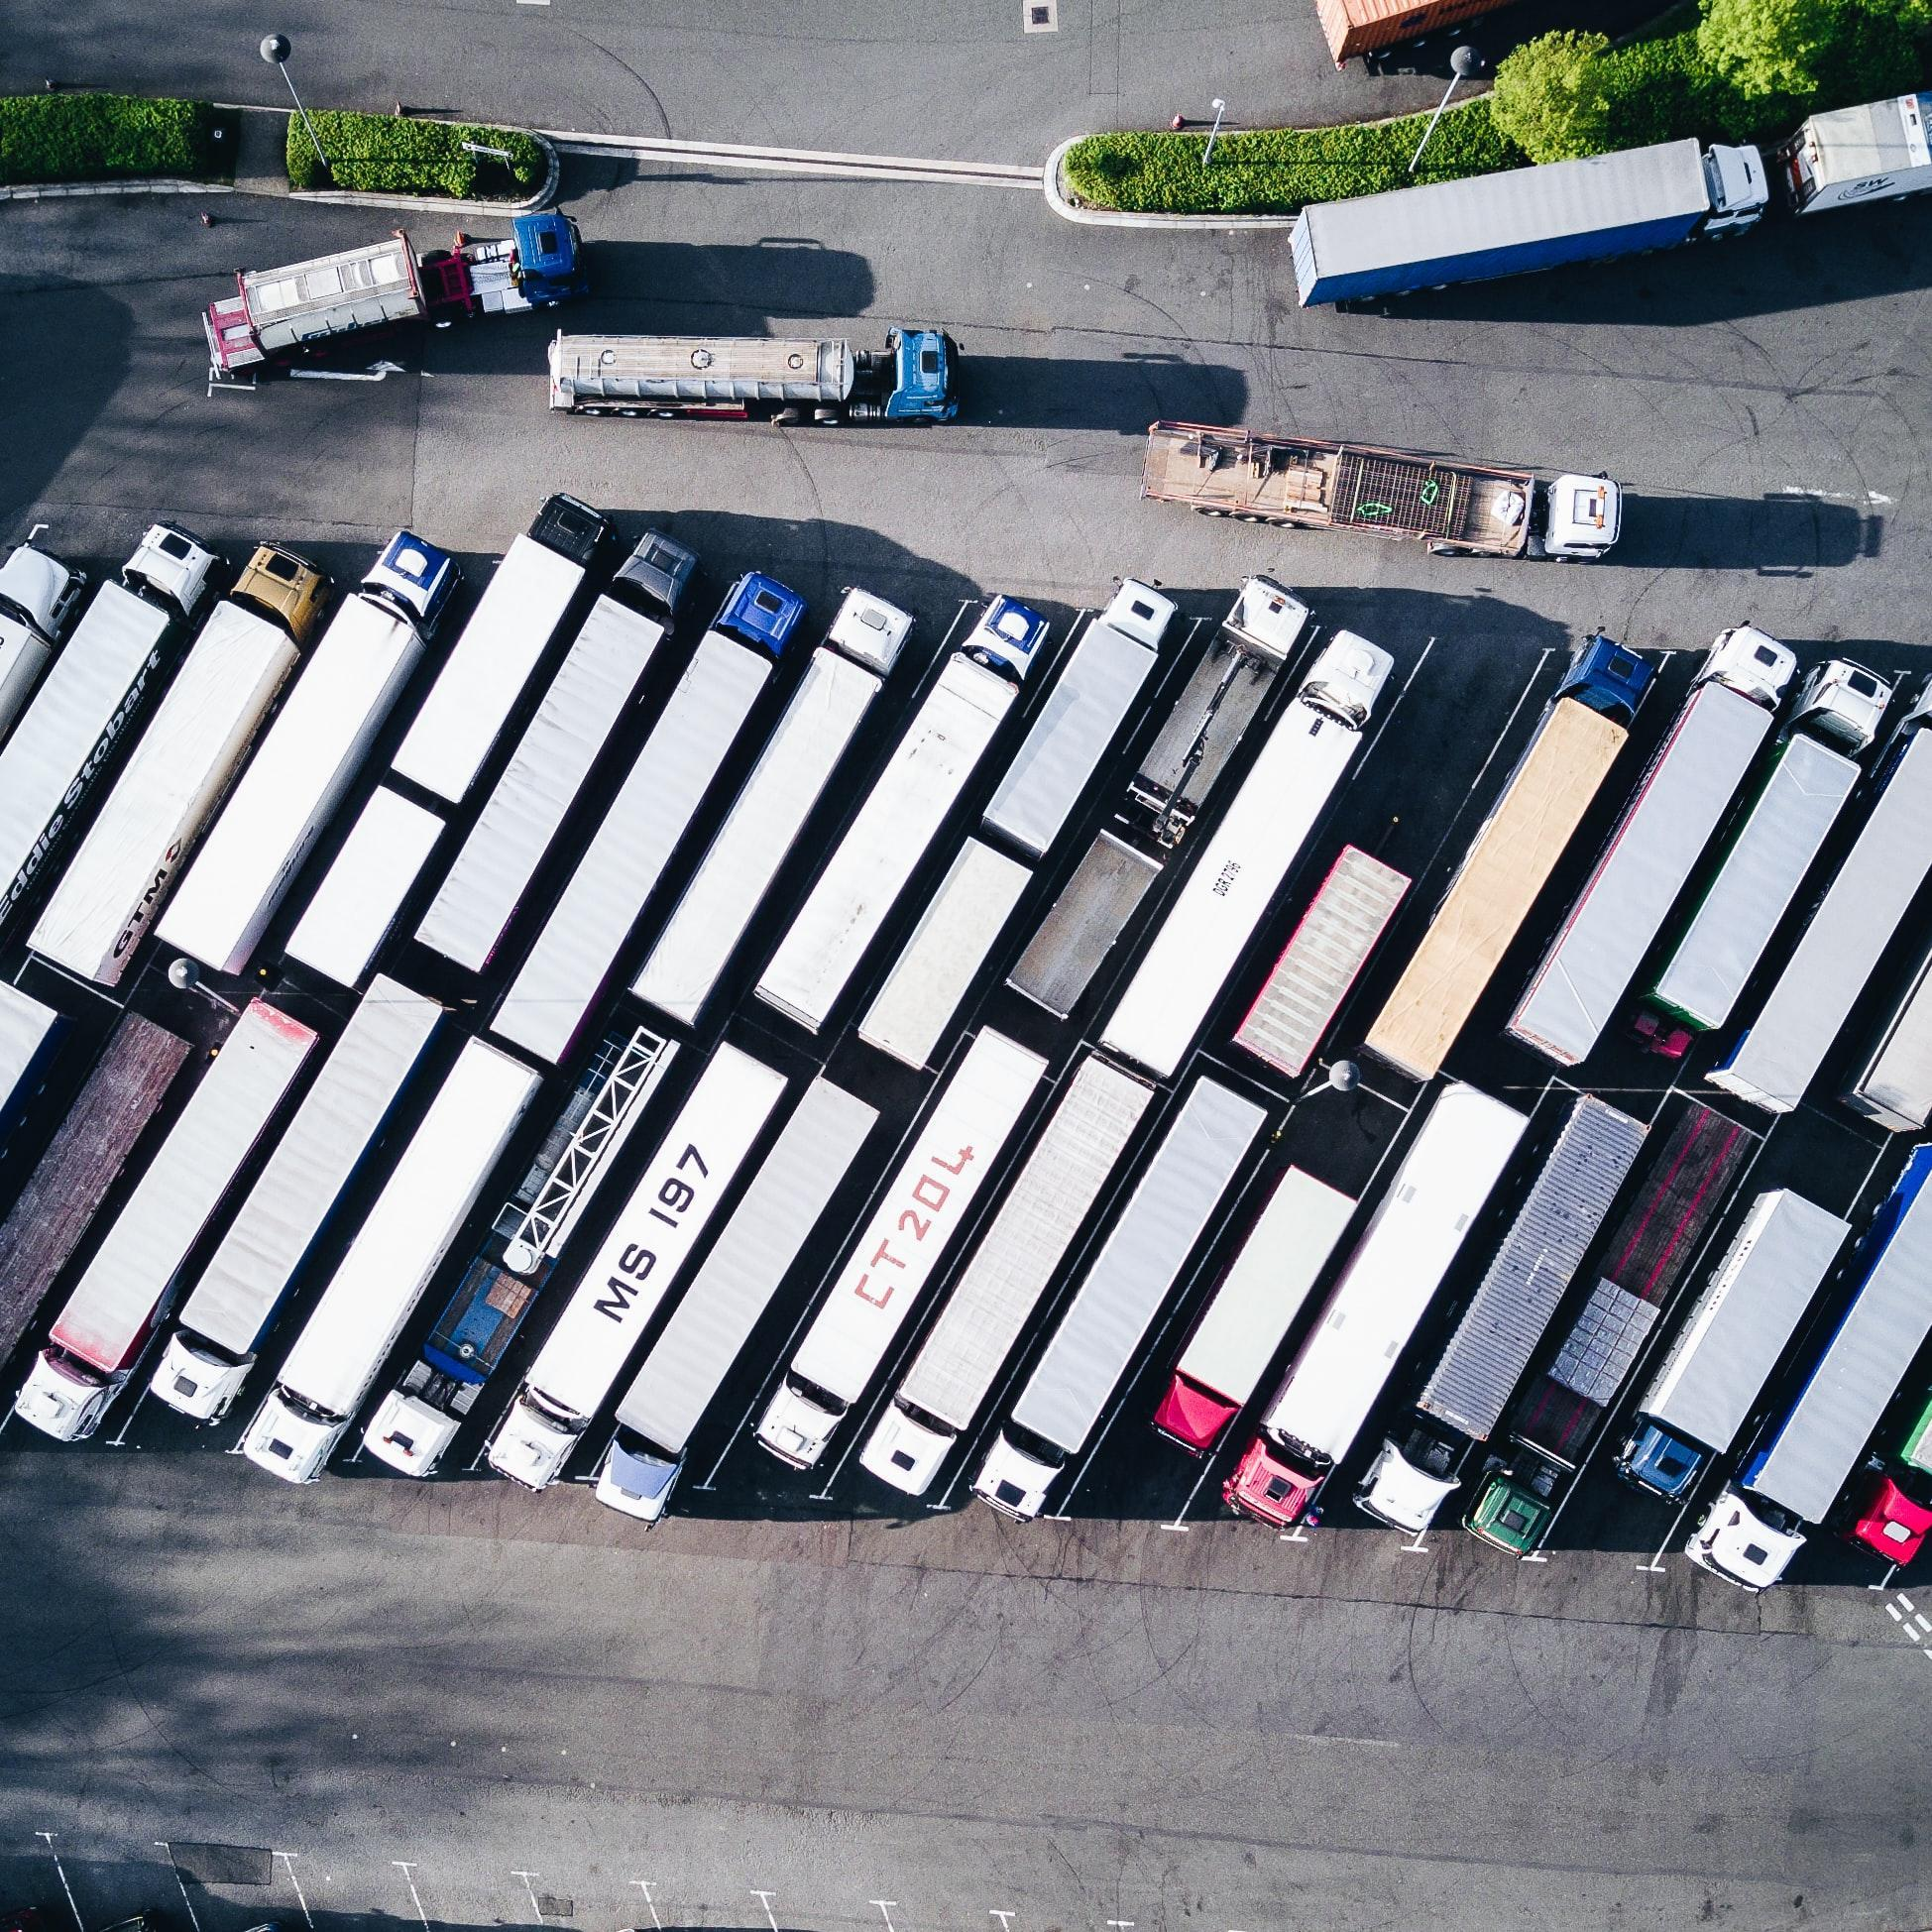 aerial shot of vehicles to show how covid-19 has increased demand – leading to more digitalisation in the logistics sector